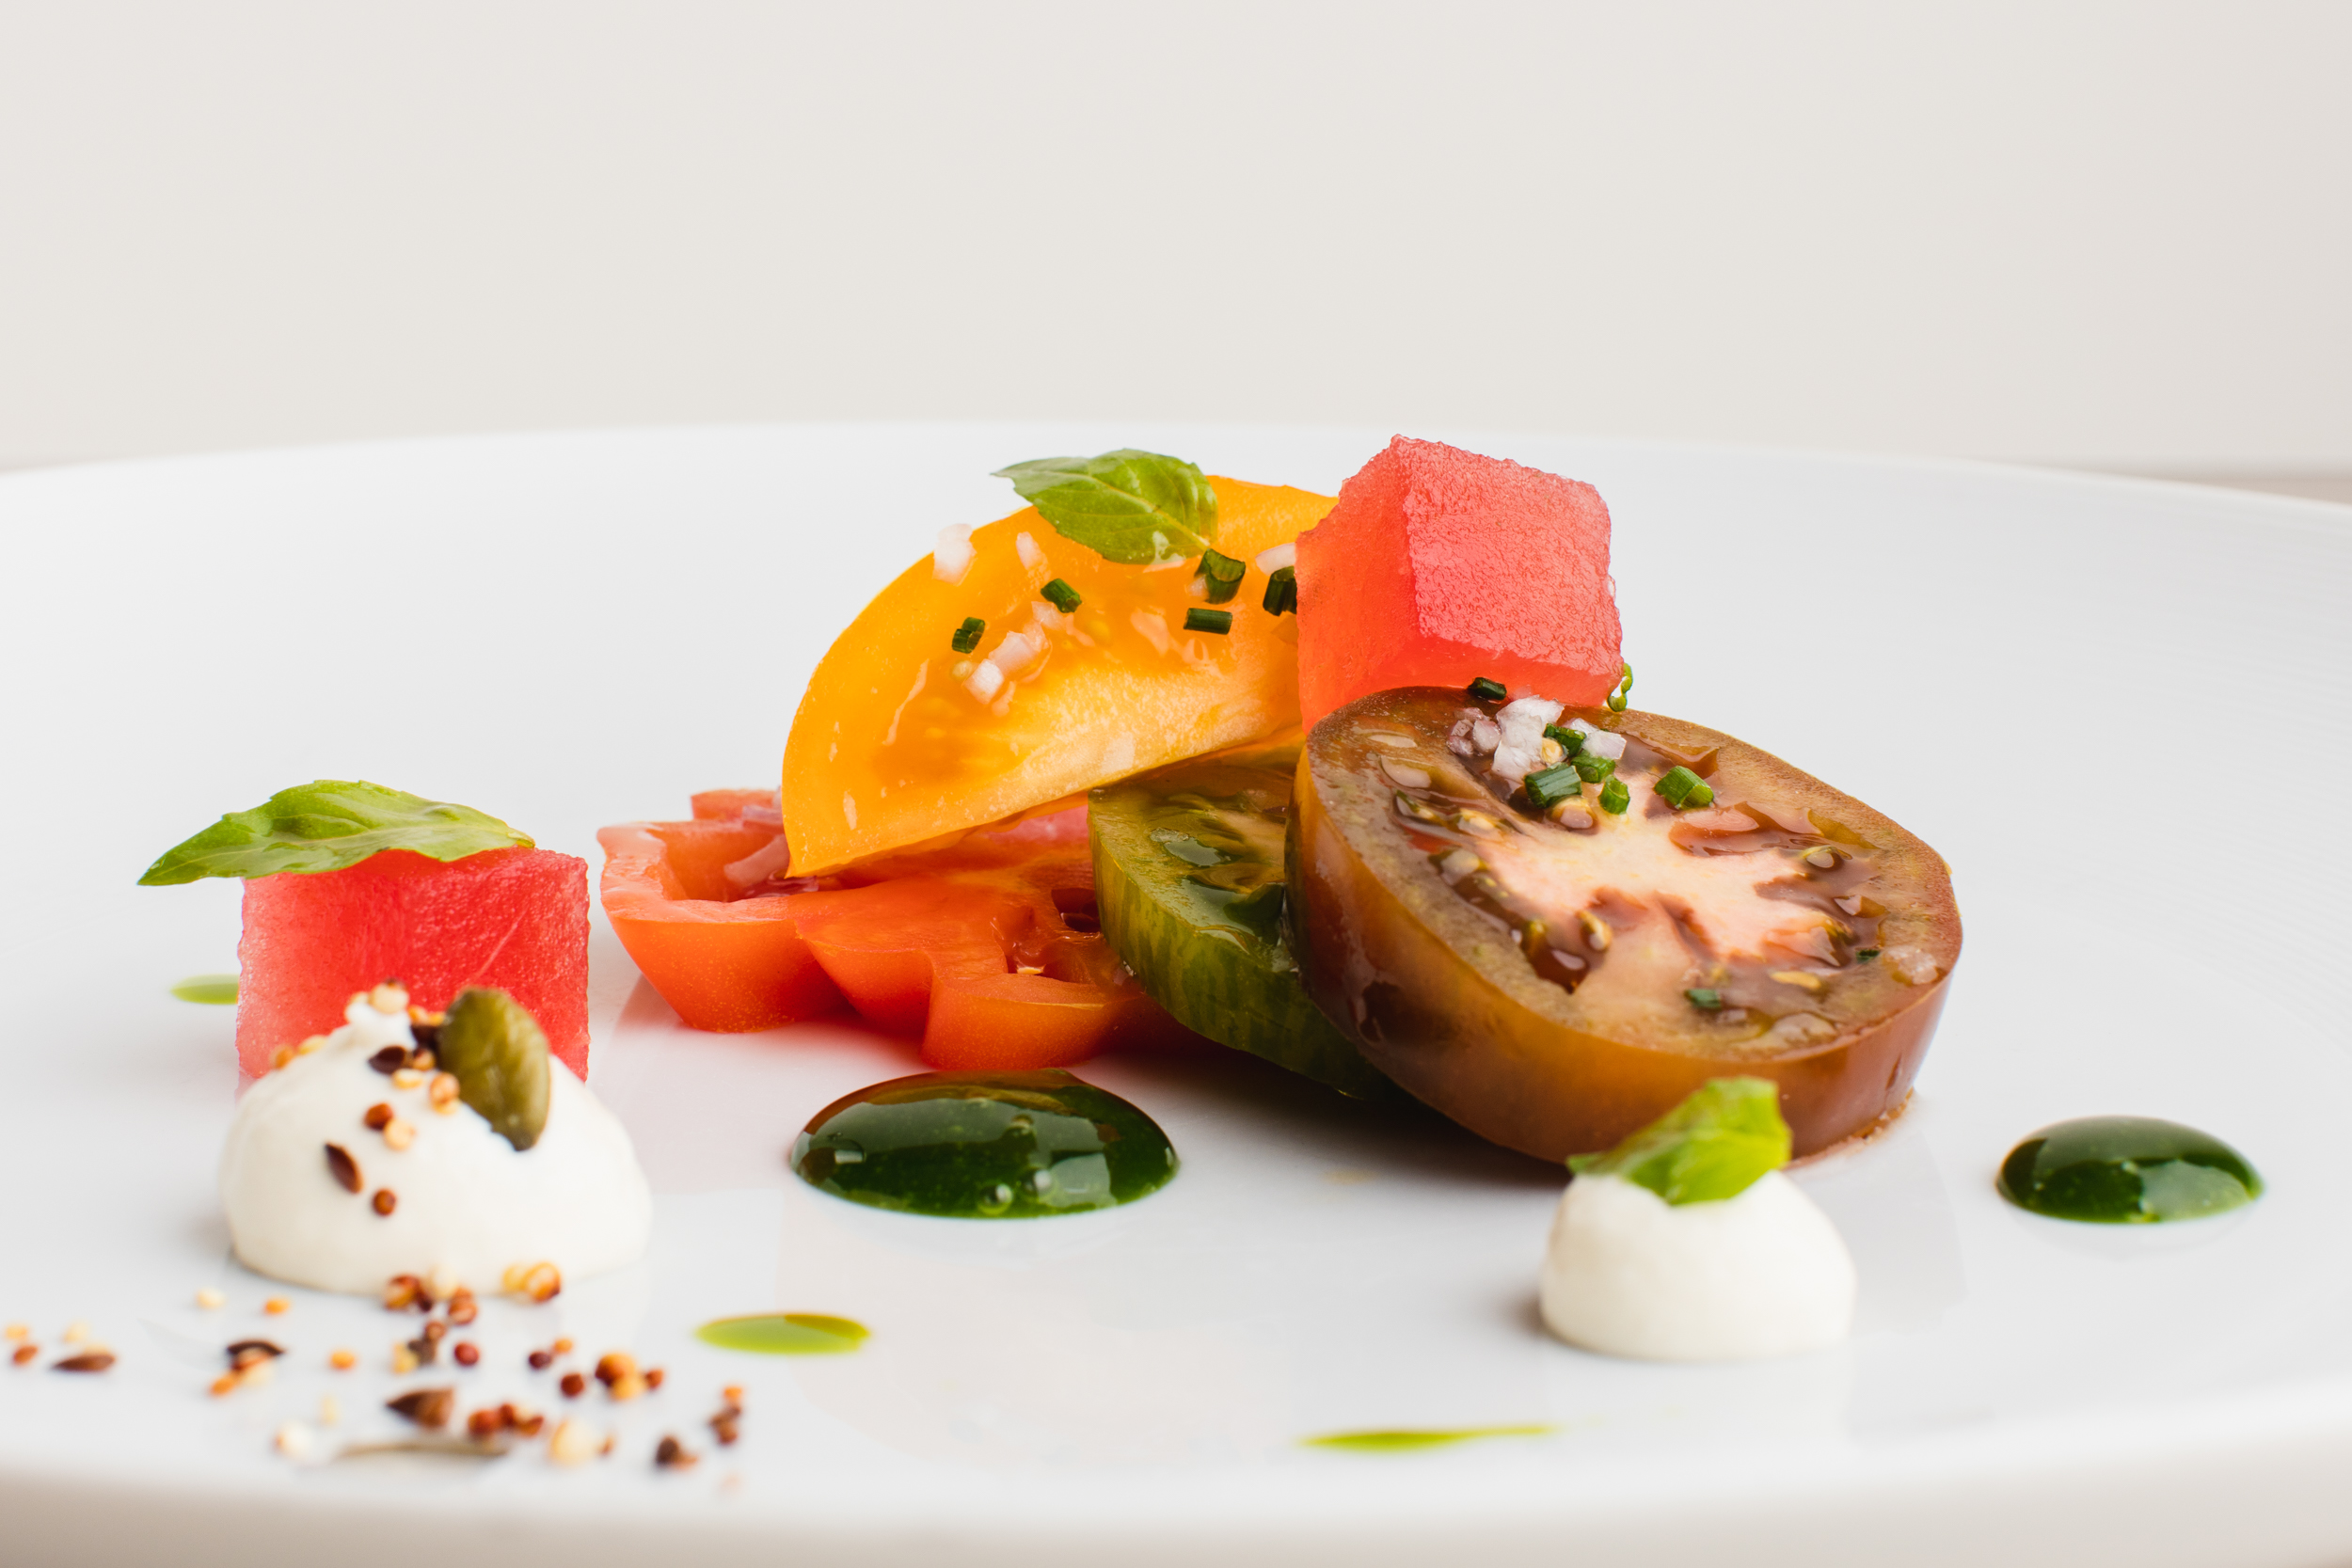 heritage-tomatoes-with-burrata-cream-pressed-water-melon-and-basil